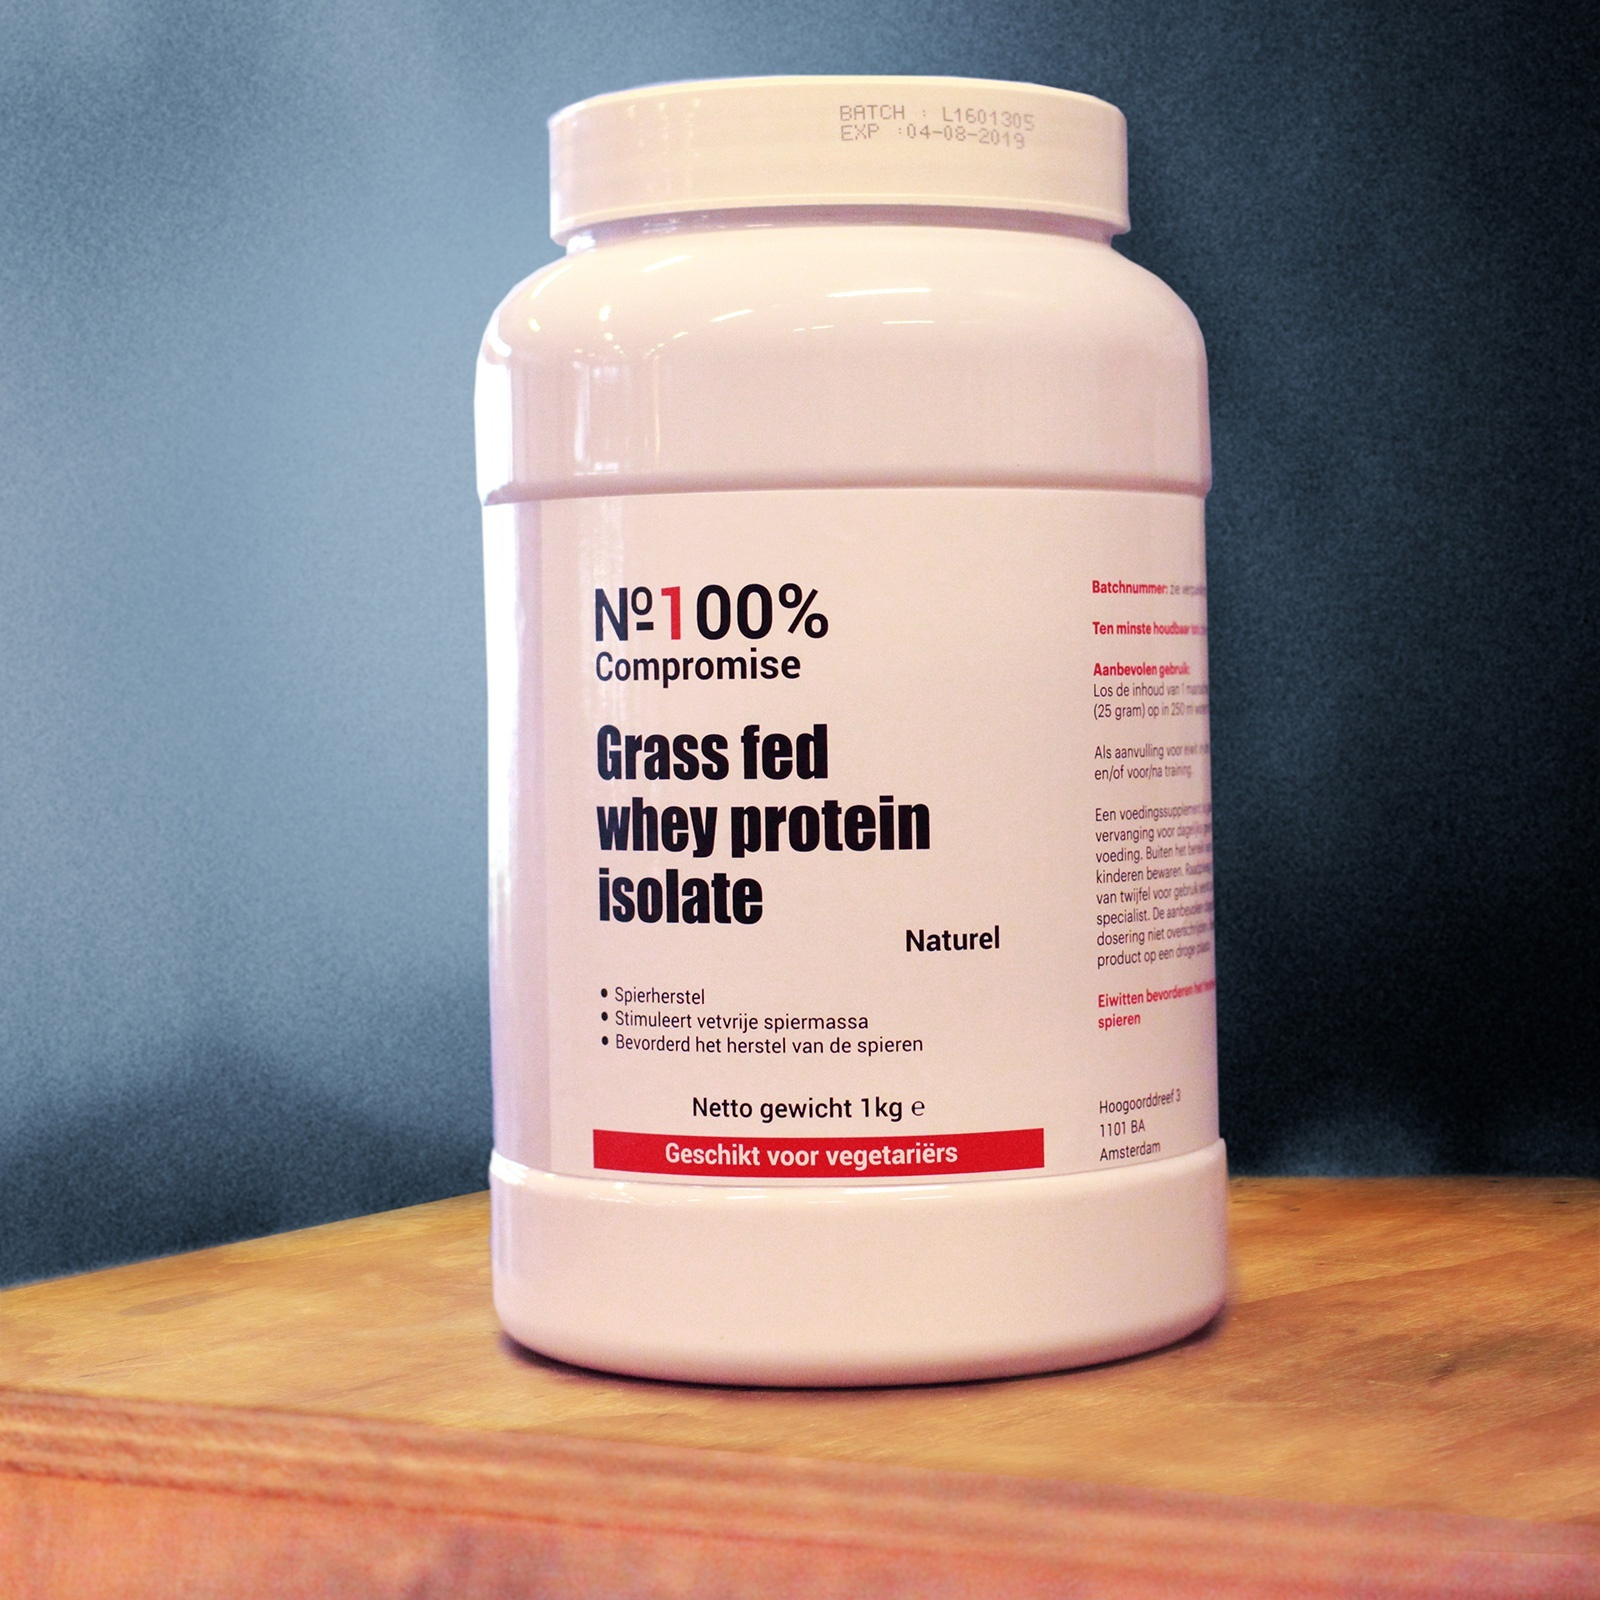 Organic whey protein isolate grass fed cows